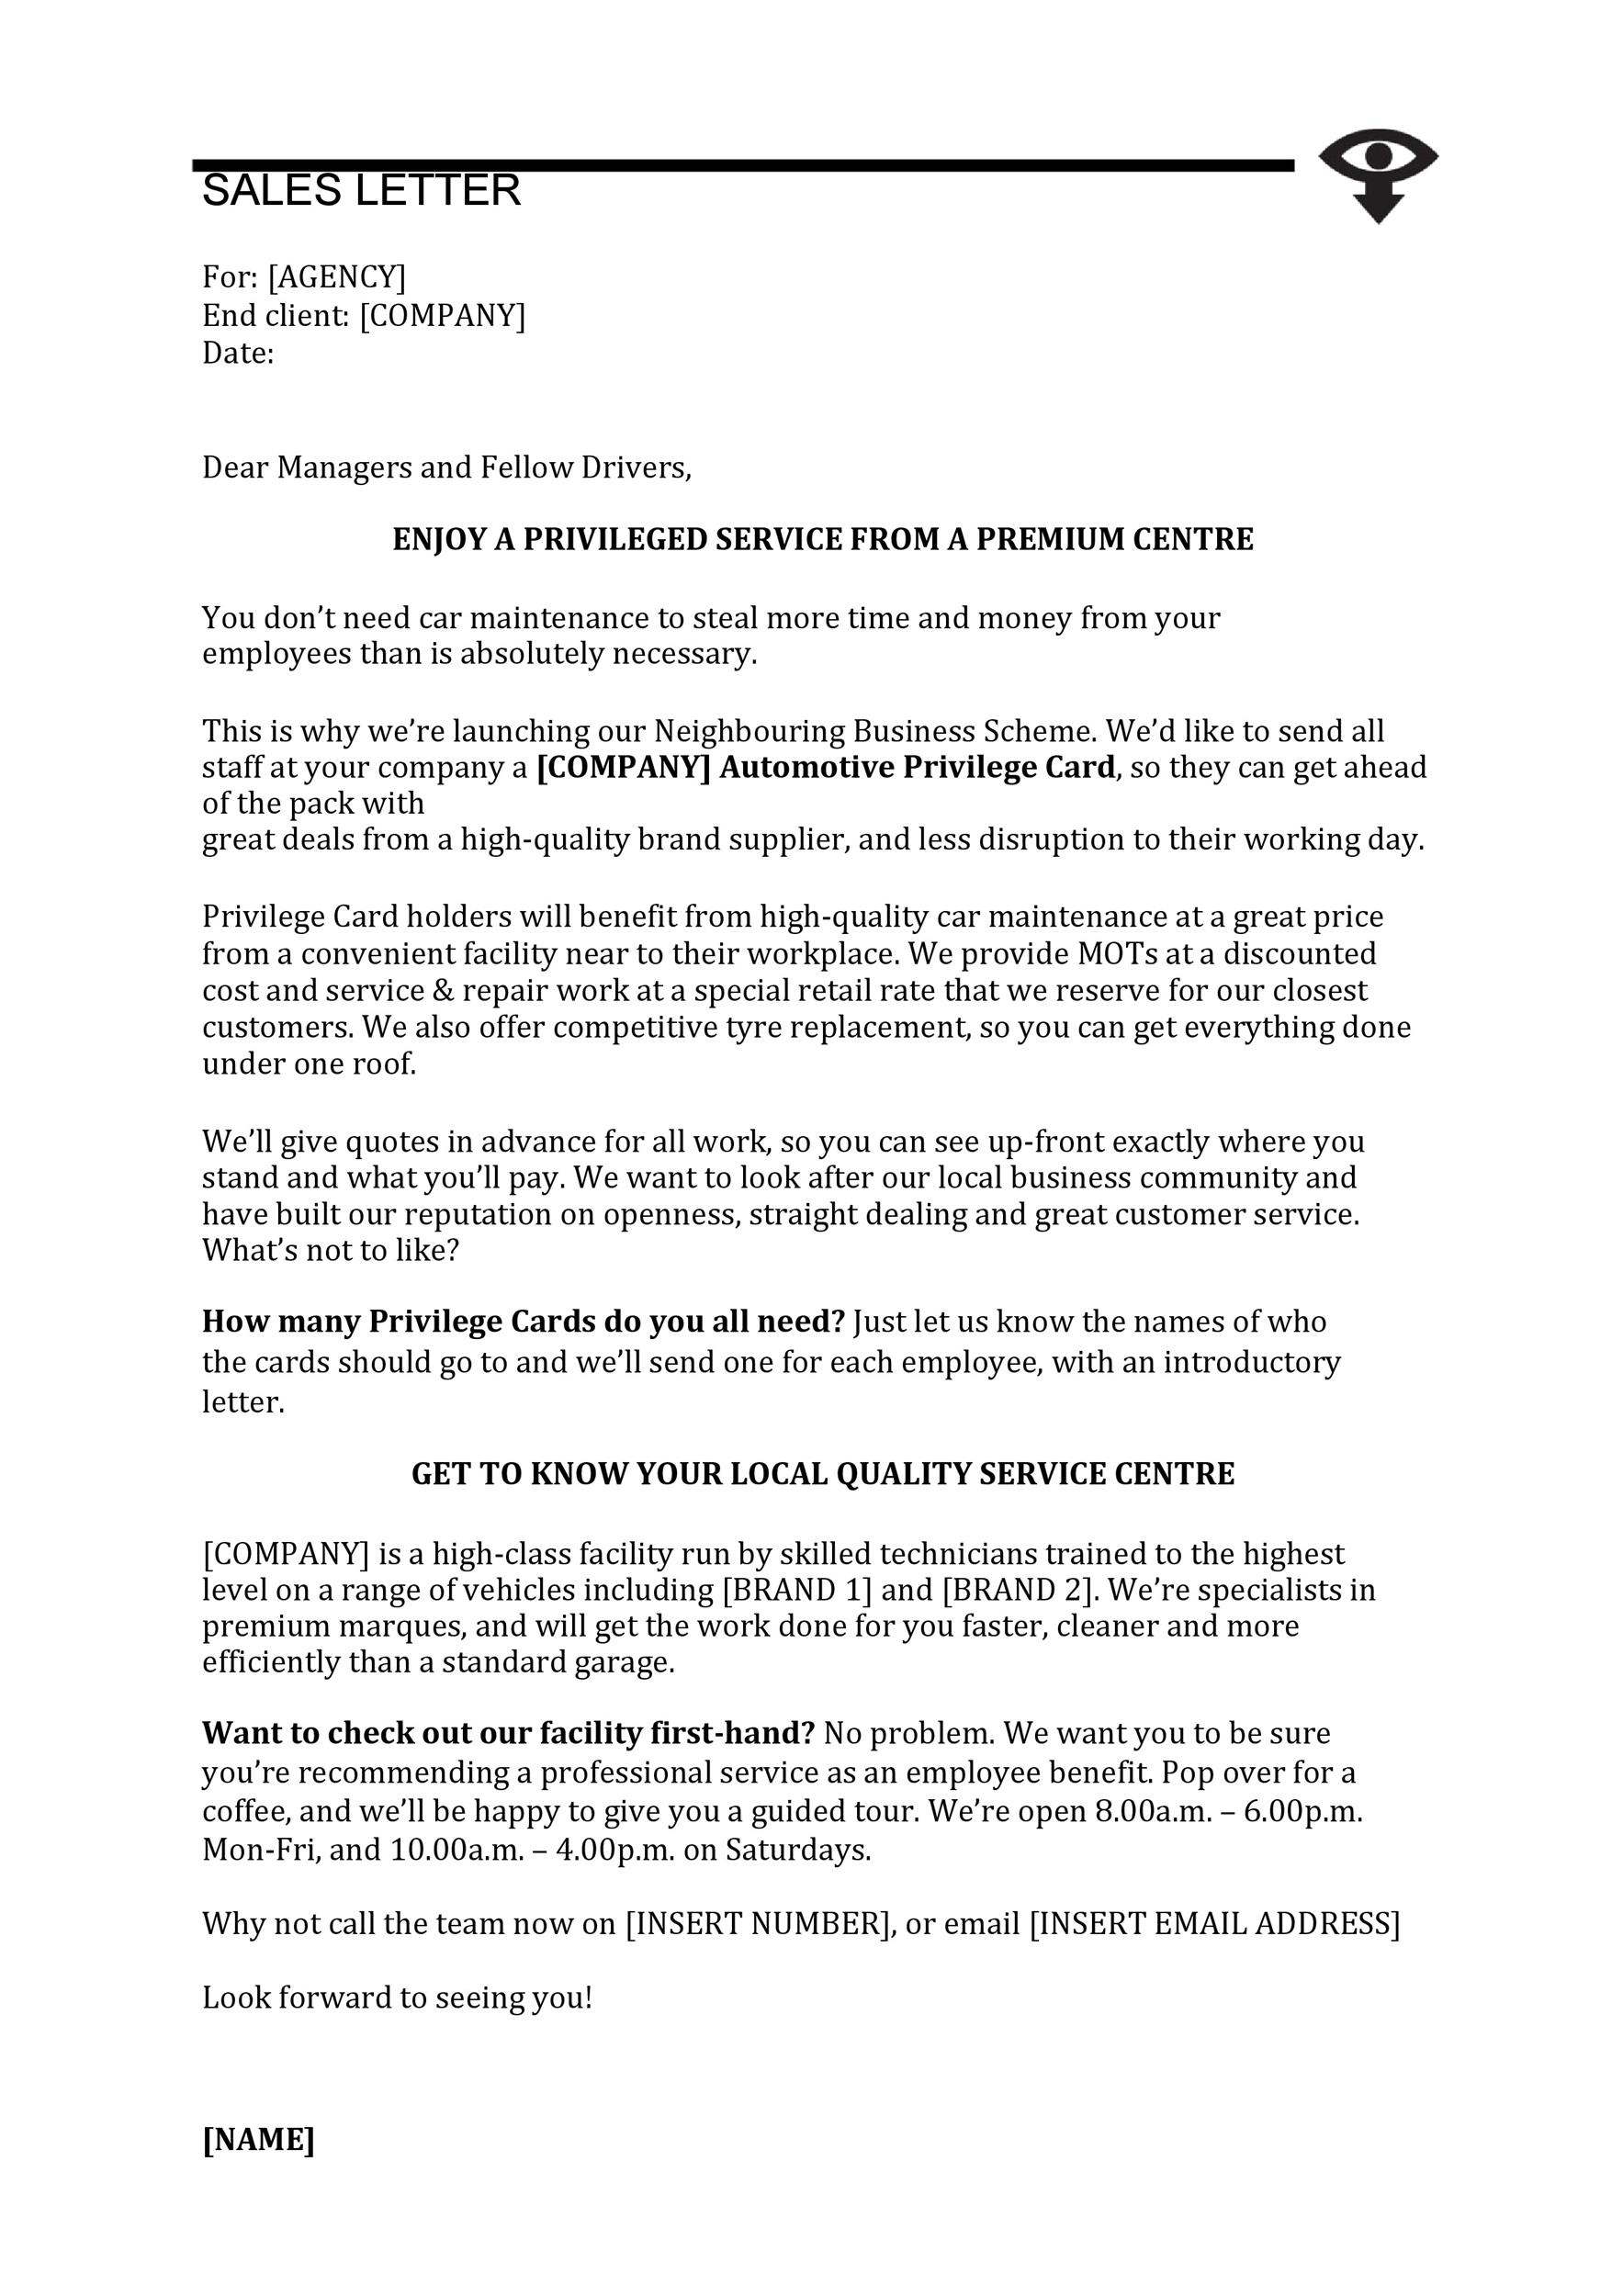 Free sales letter template 30